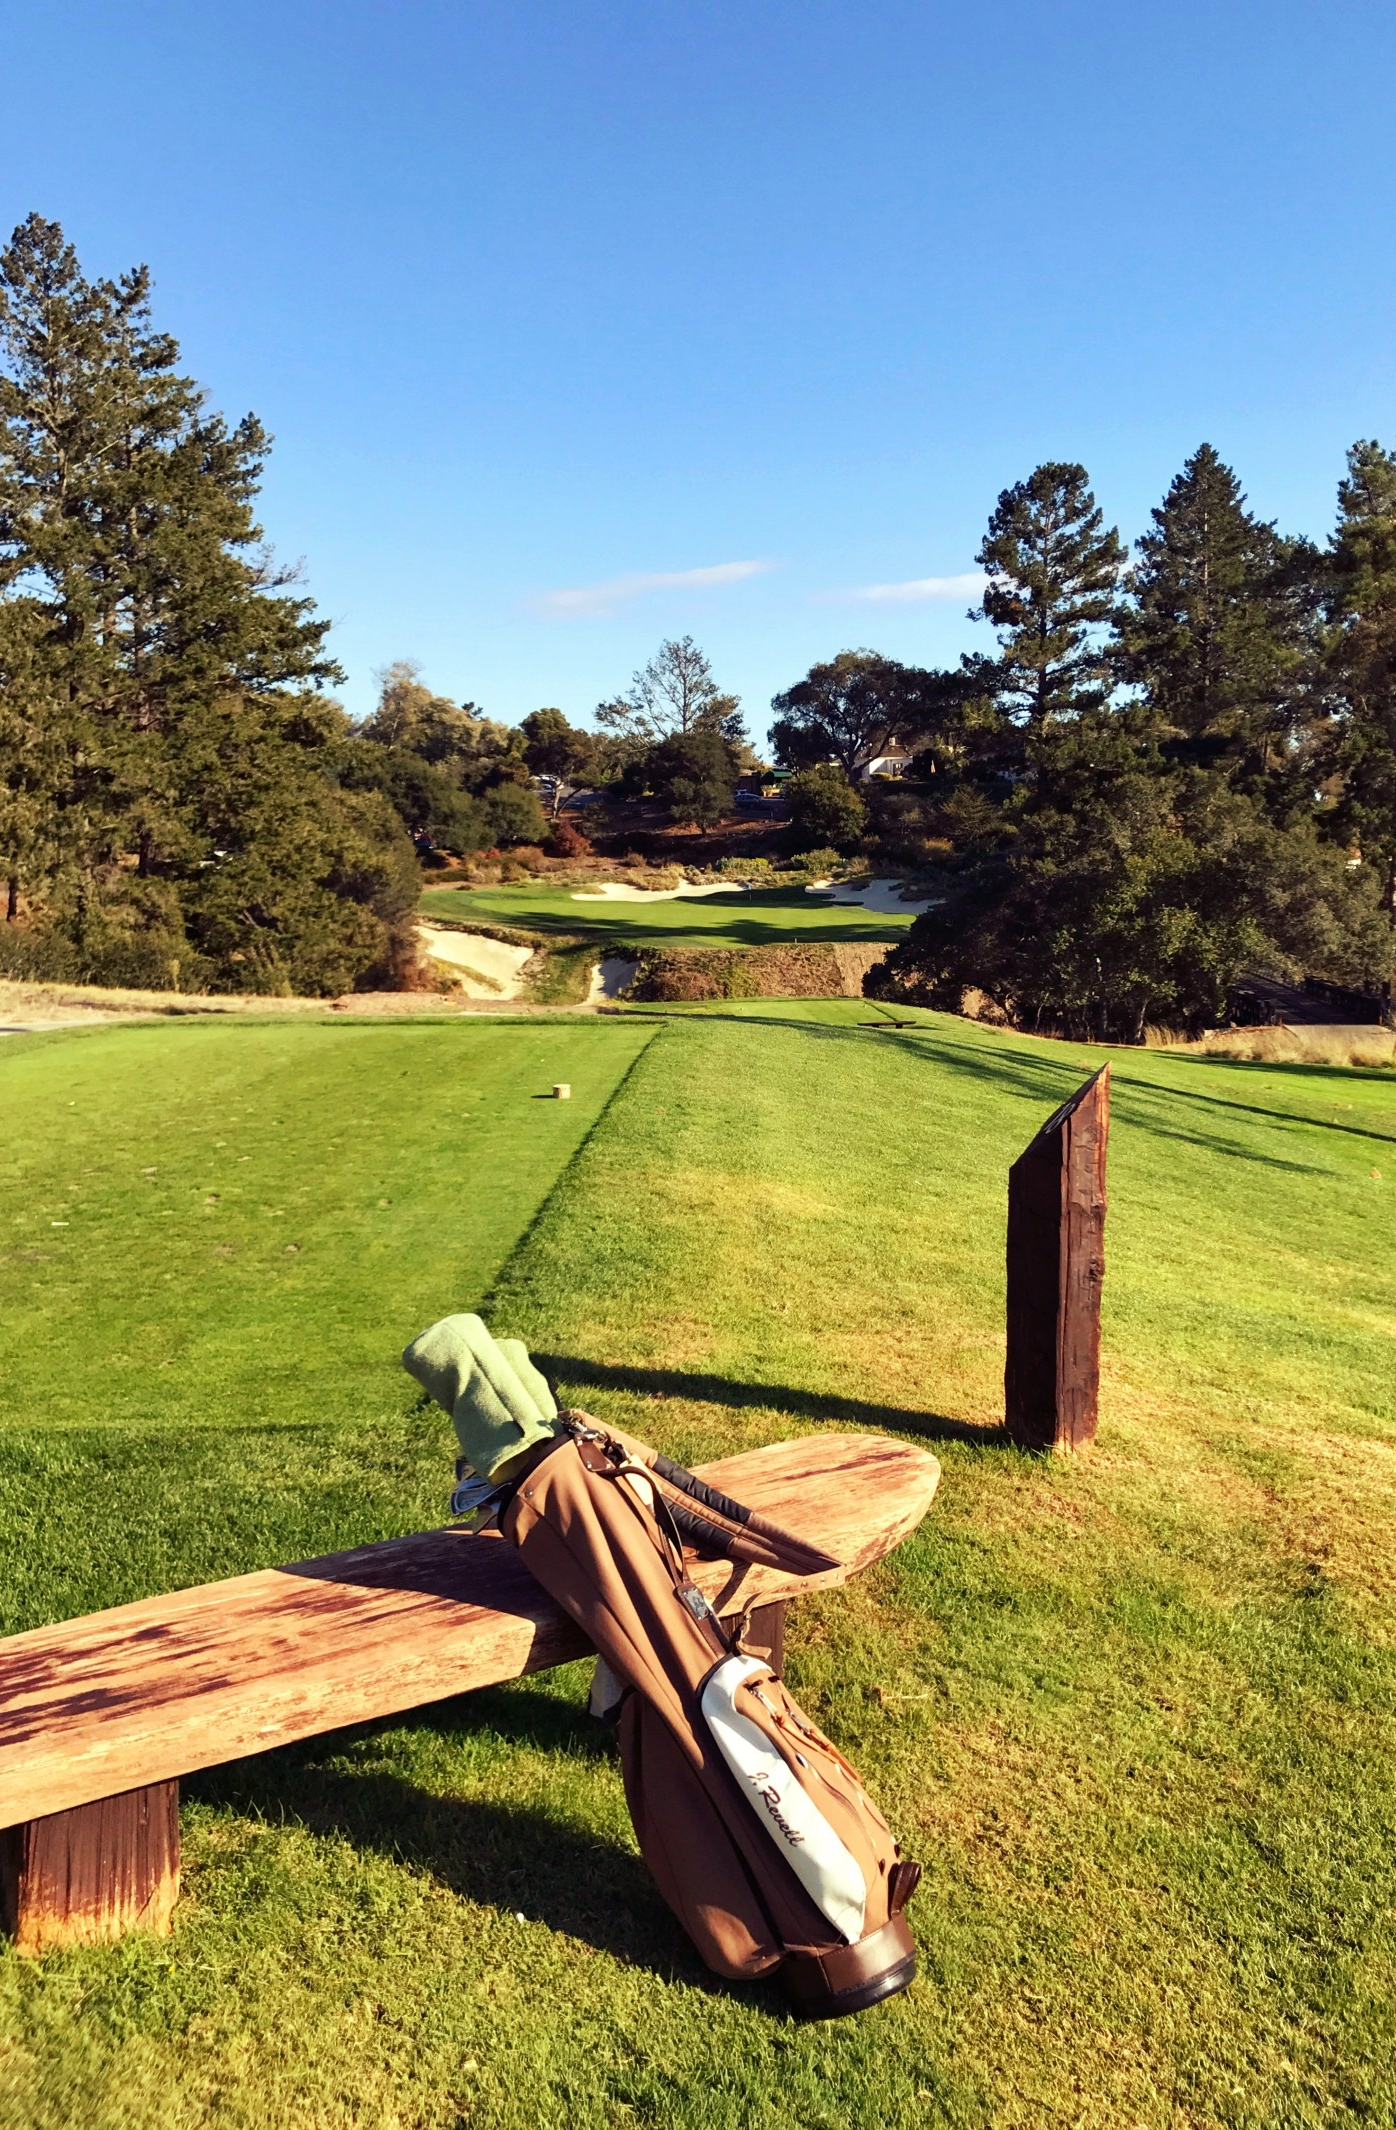 The eighteenth hole at Pasatiempo, a courageous one shotter.